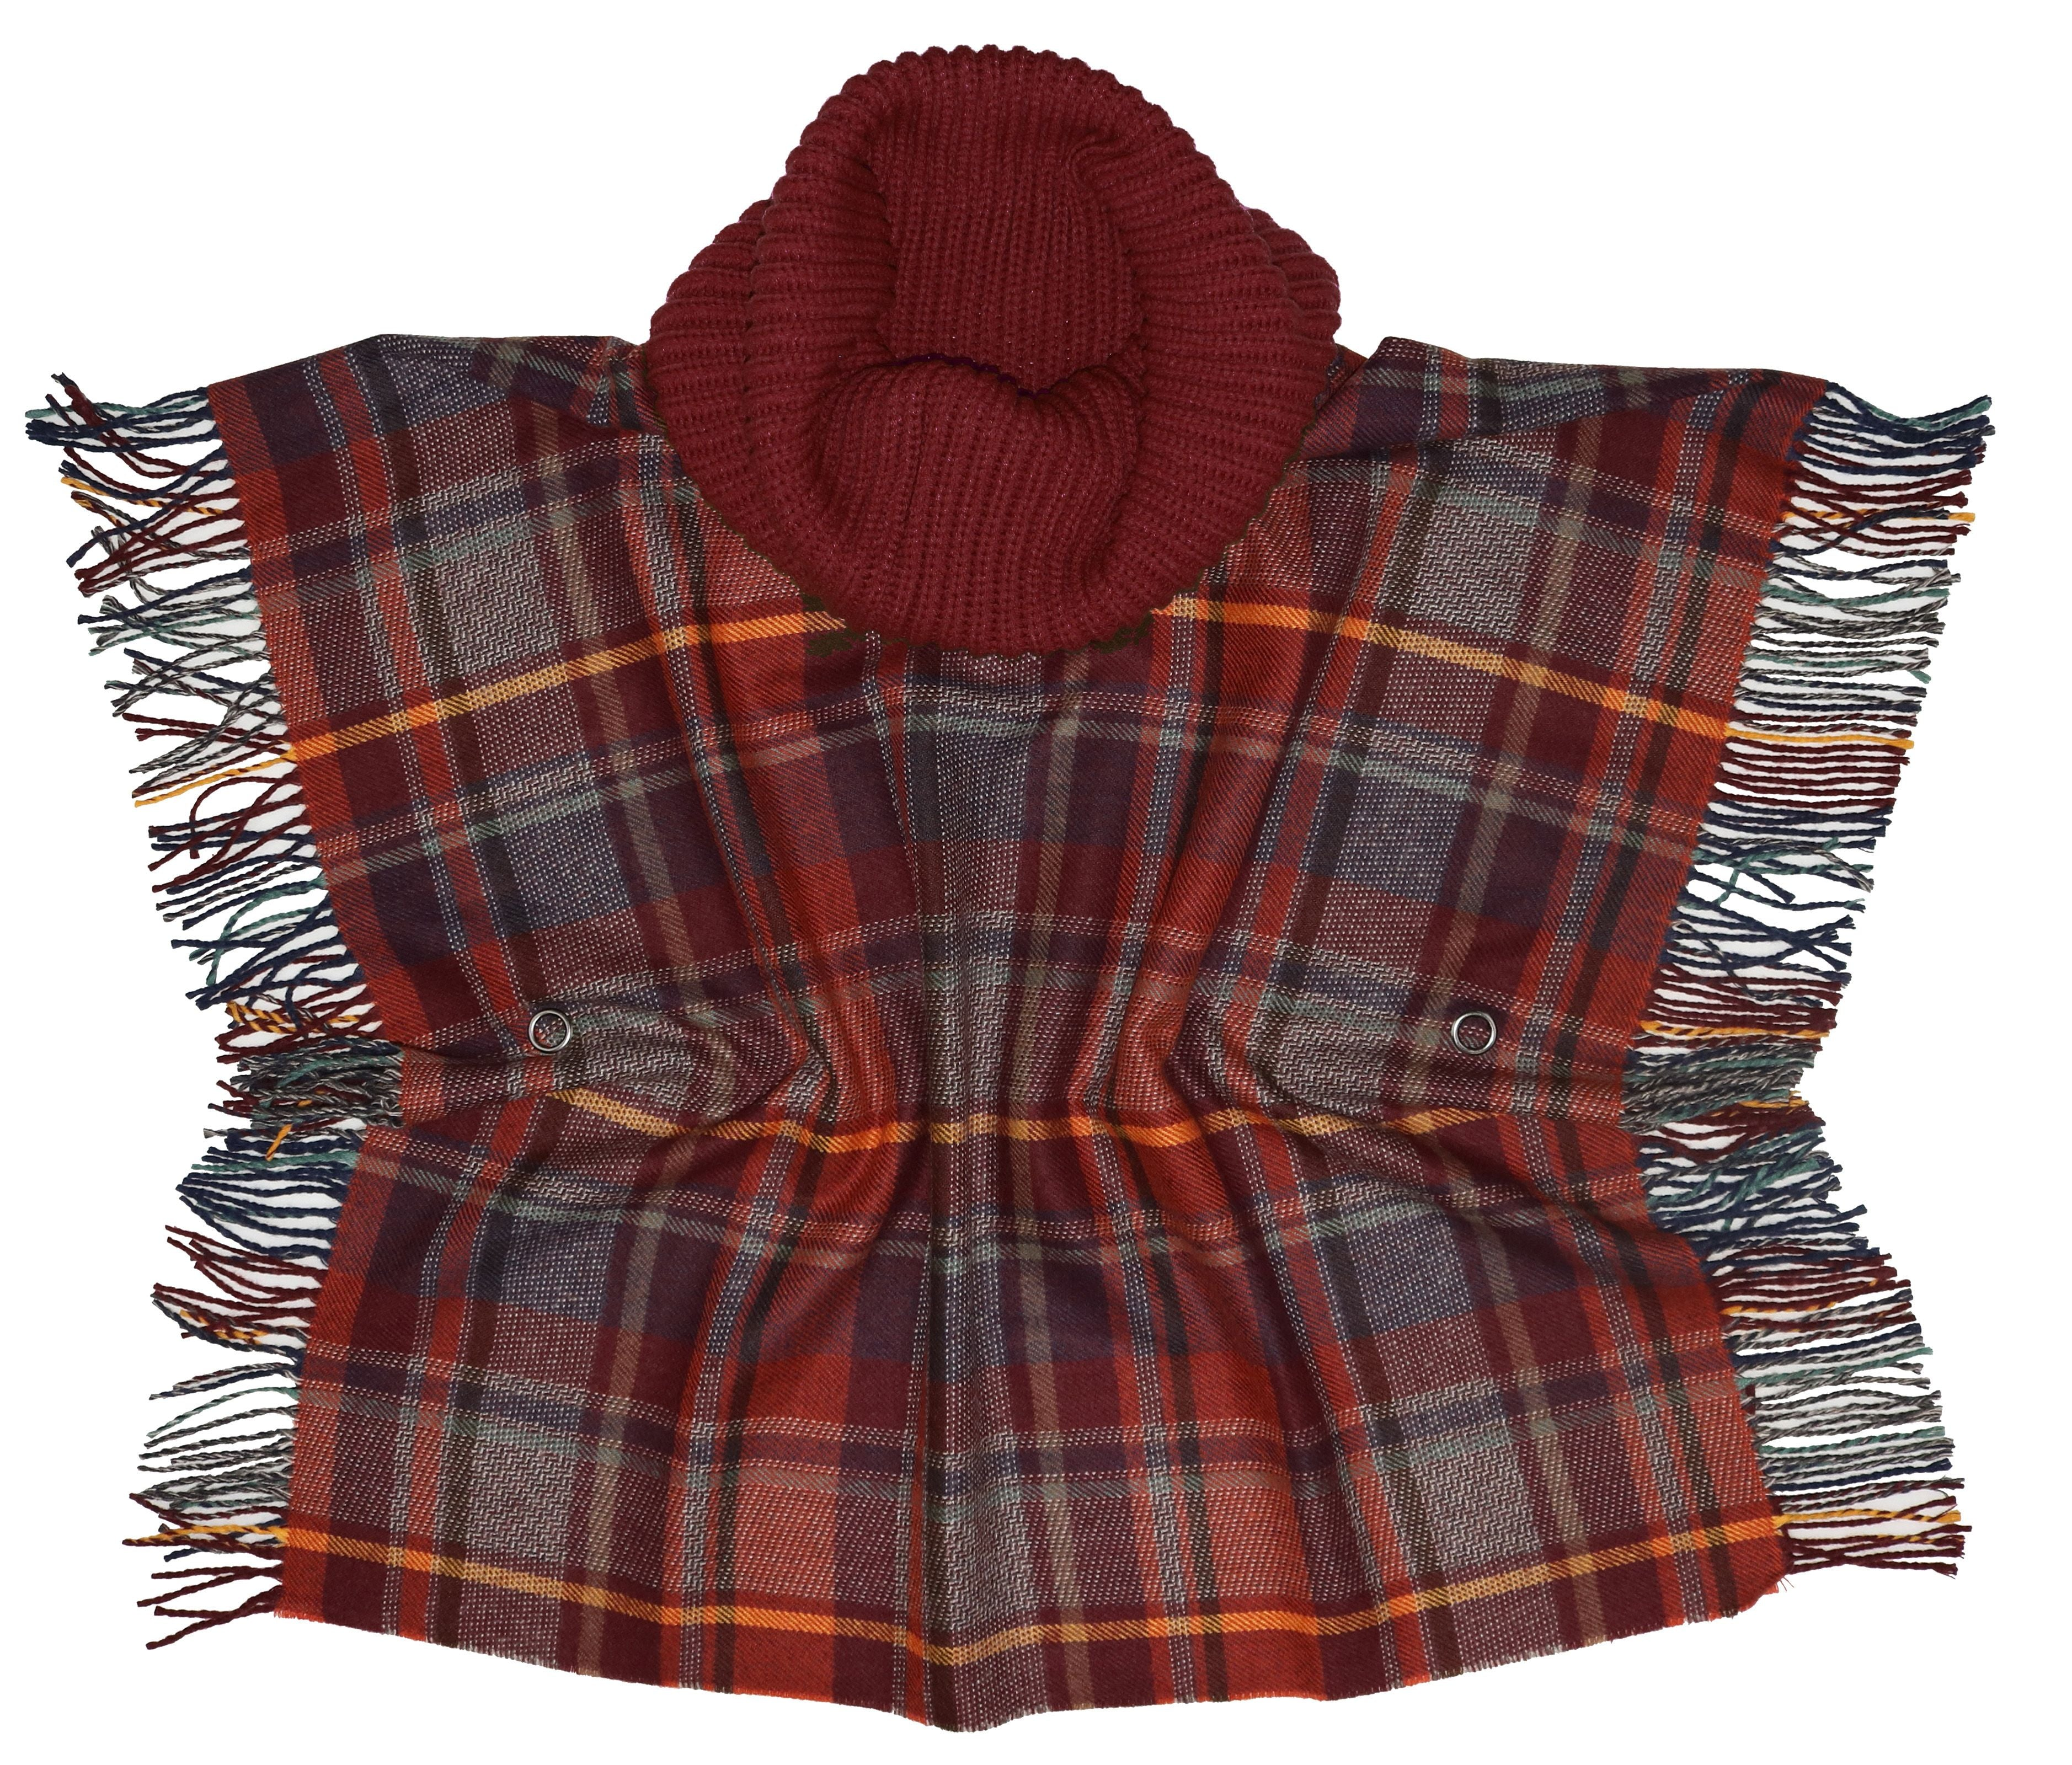 Plaid Acrylic Woven Poncho with Cowl Knit Collar